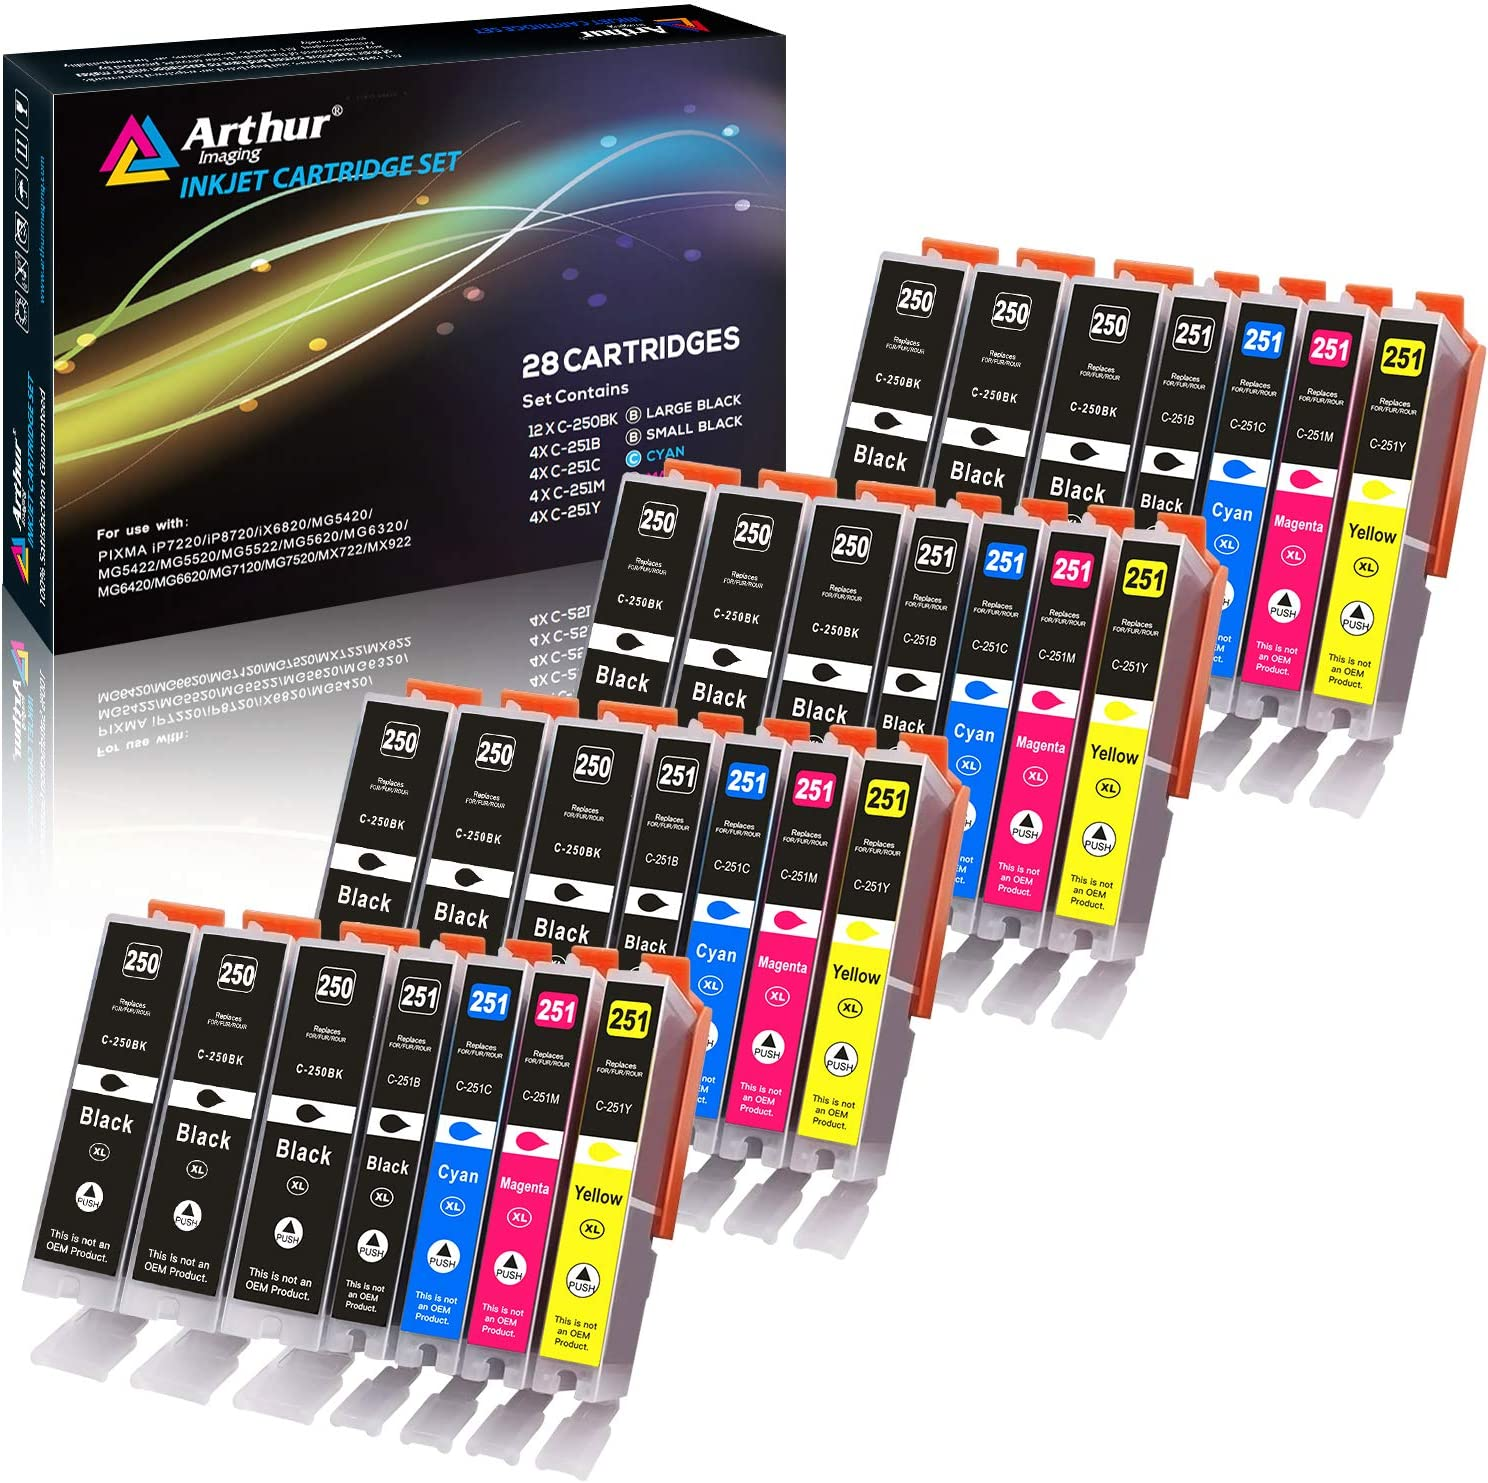 Arthur Imaging Compatible Ink Cartridge Replacement for Canon Pgi-250Xl CLI-251XL for Use with Pixma MX922 MG5520 (12 Large Black, 4 Small Black, 4 Cyan, 4 Yellow, 4 Magenta, 28-Pack)